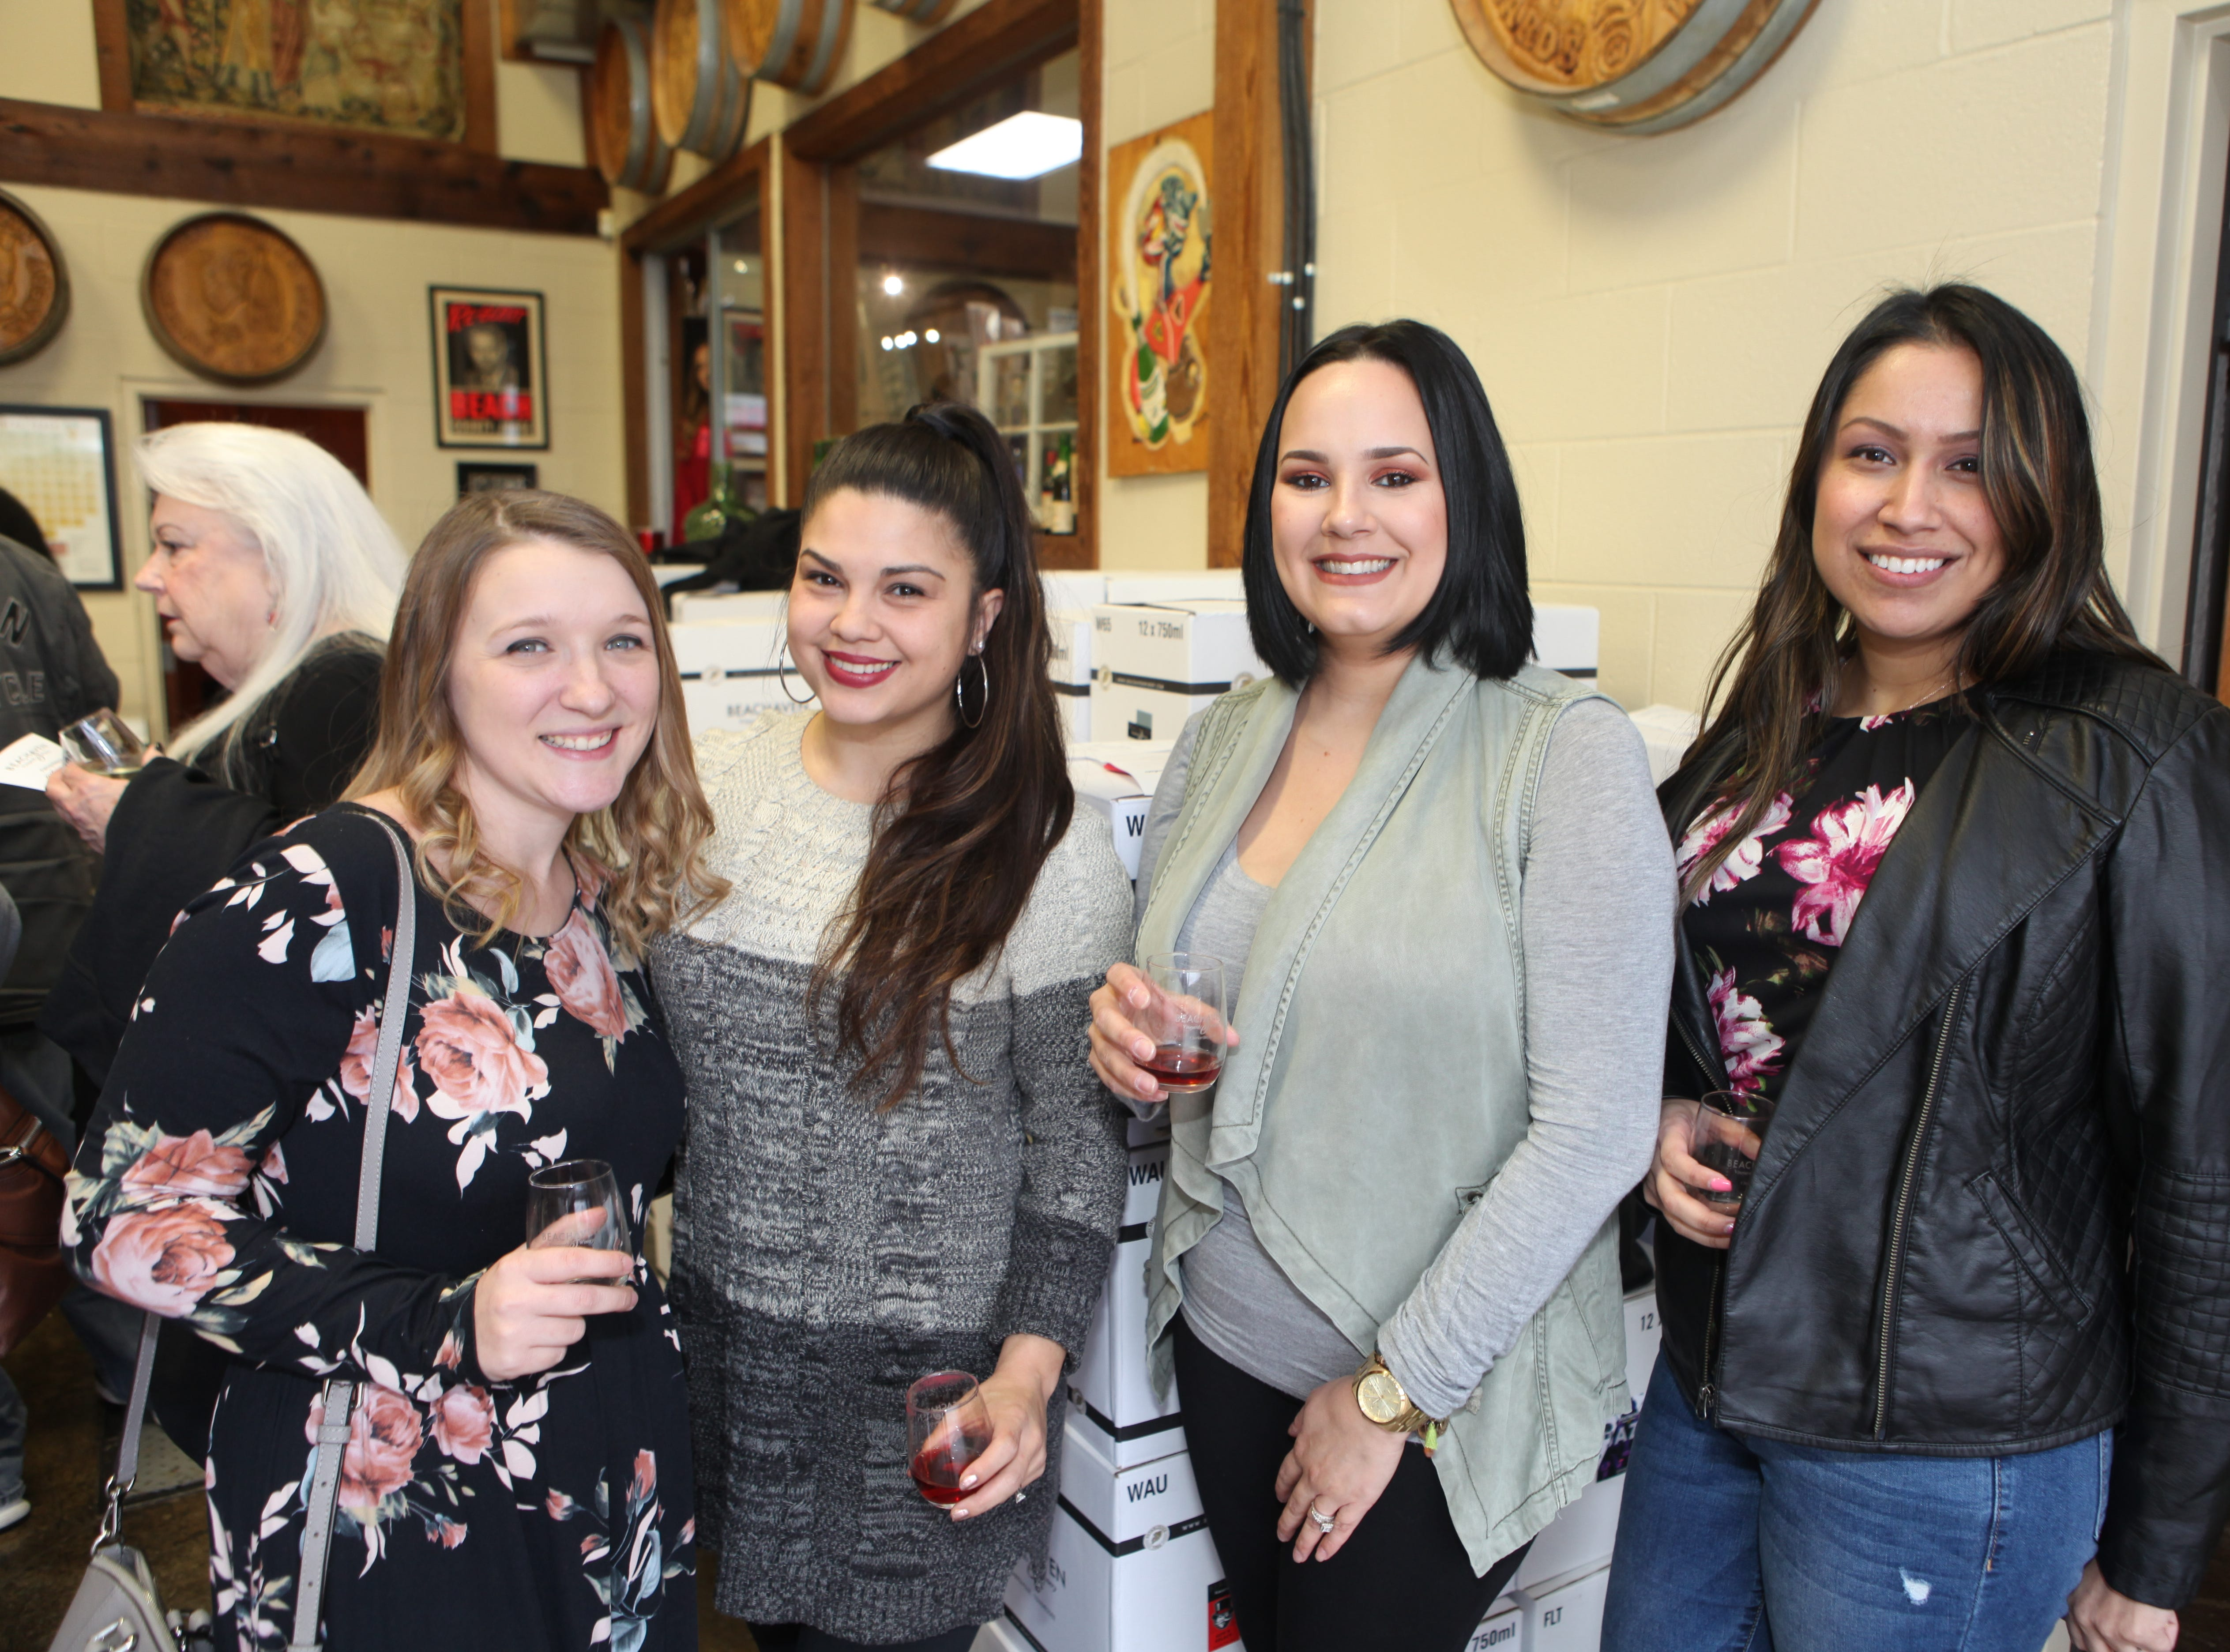 Katelin Parson, Tracy Petrilli, Casandra West, and Jonelle Dyer at the Chocolate and Wine Tasting at Beachaven Winery on Sunday, Feb. 10, 2019.